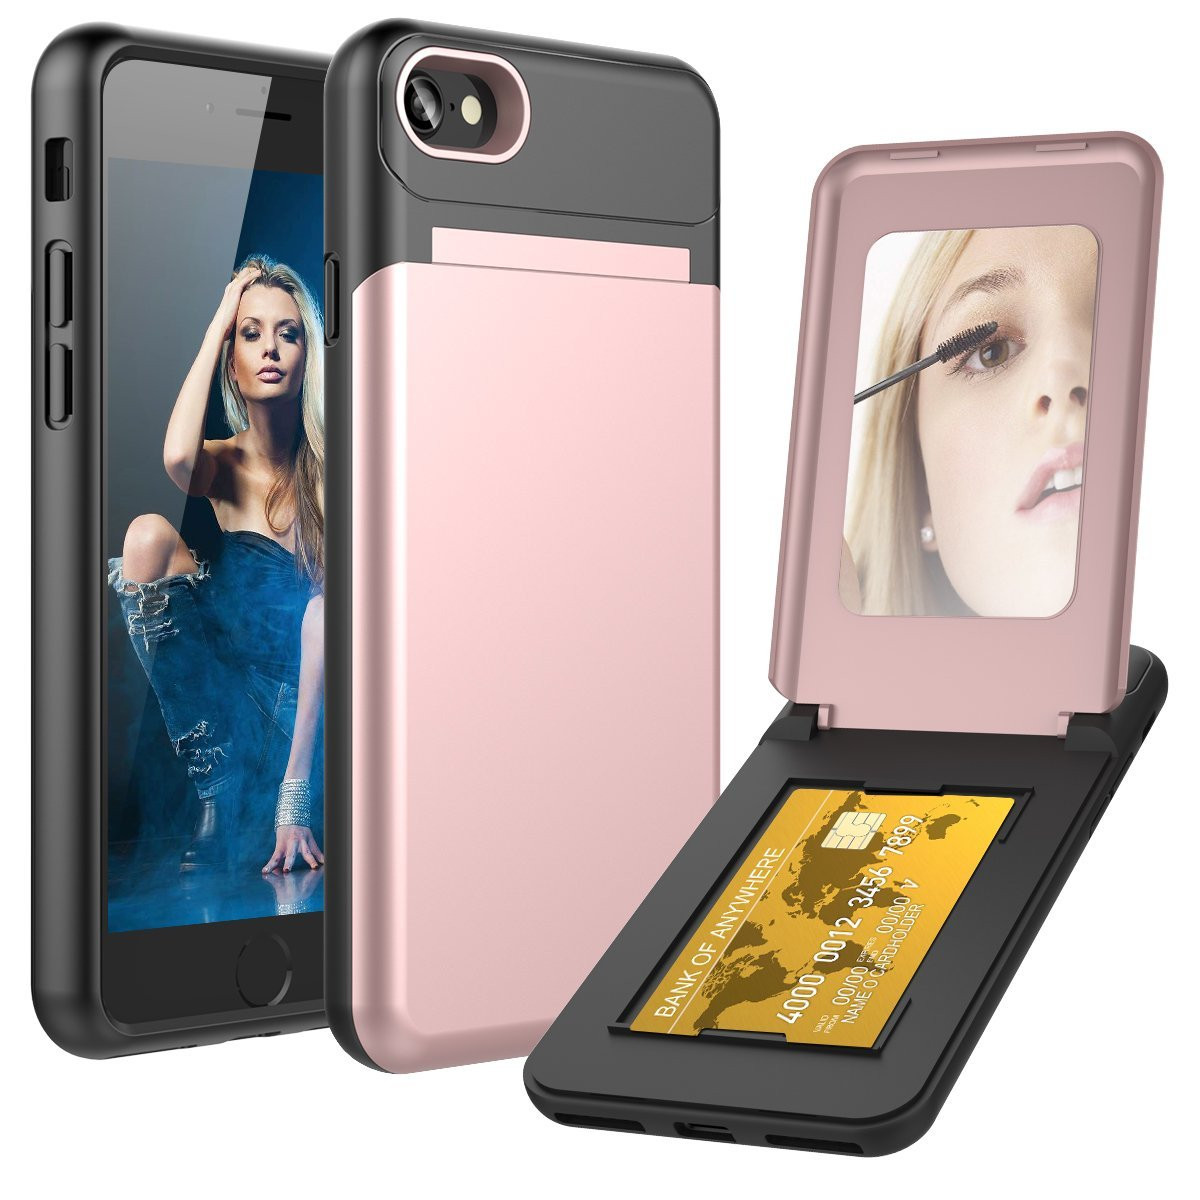 Apple iPhone 8 -  Hard Phone Case with Hidden Mirror and Card Holder Compartment, Rose Gold/Black